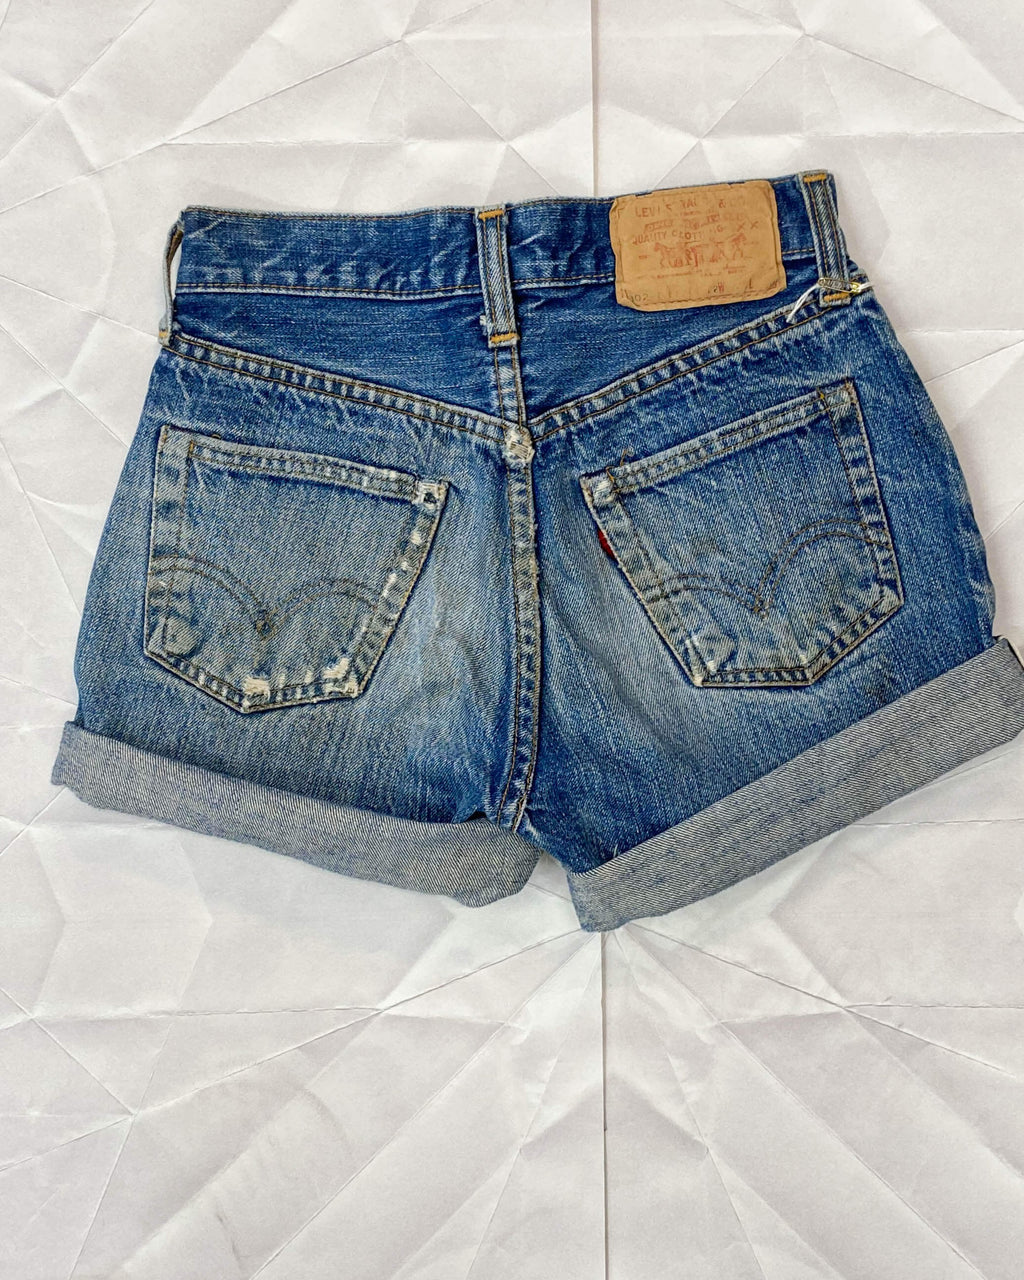 Vintage Levi Cutoff Denim Shorts - Mini Redline